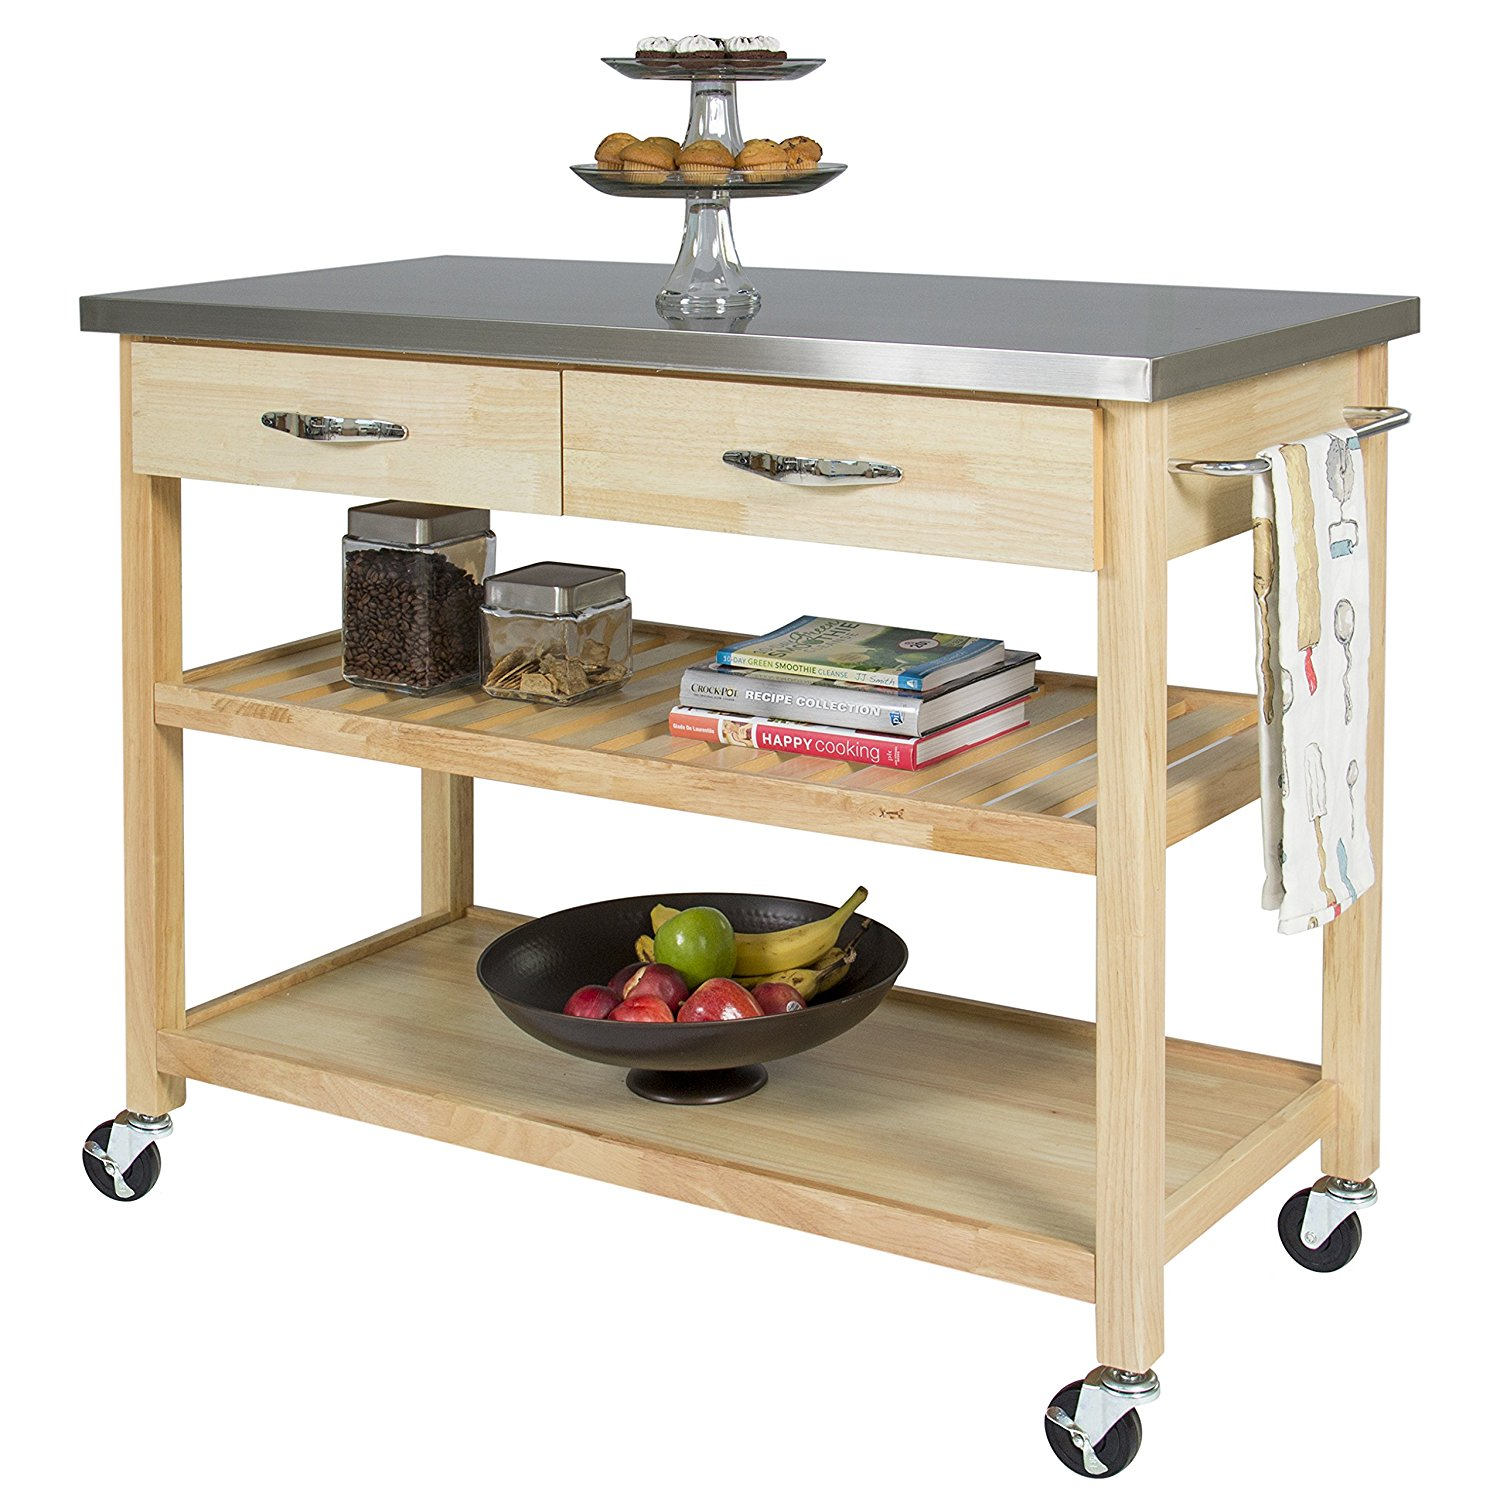 Design Ideas kitchen carts and islands amazon.com - best choice products natural wood mobile kitchen island  utility cart hmeoouv